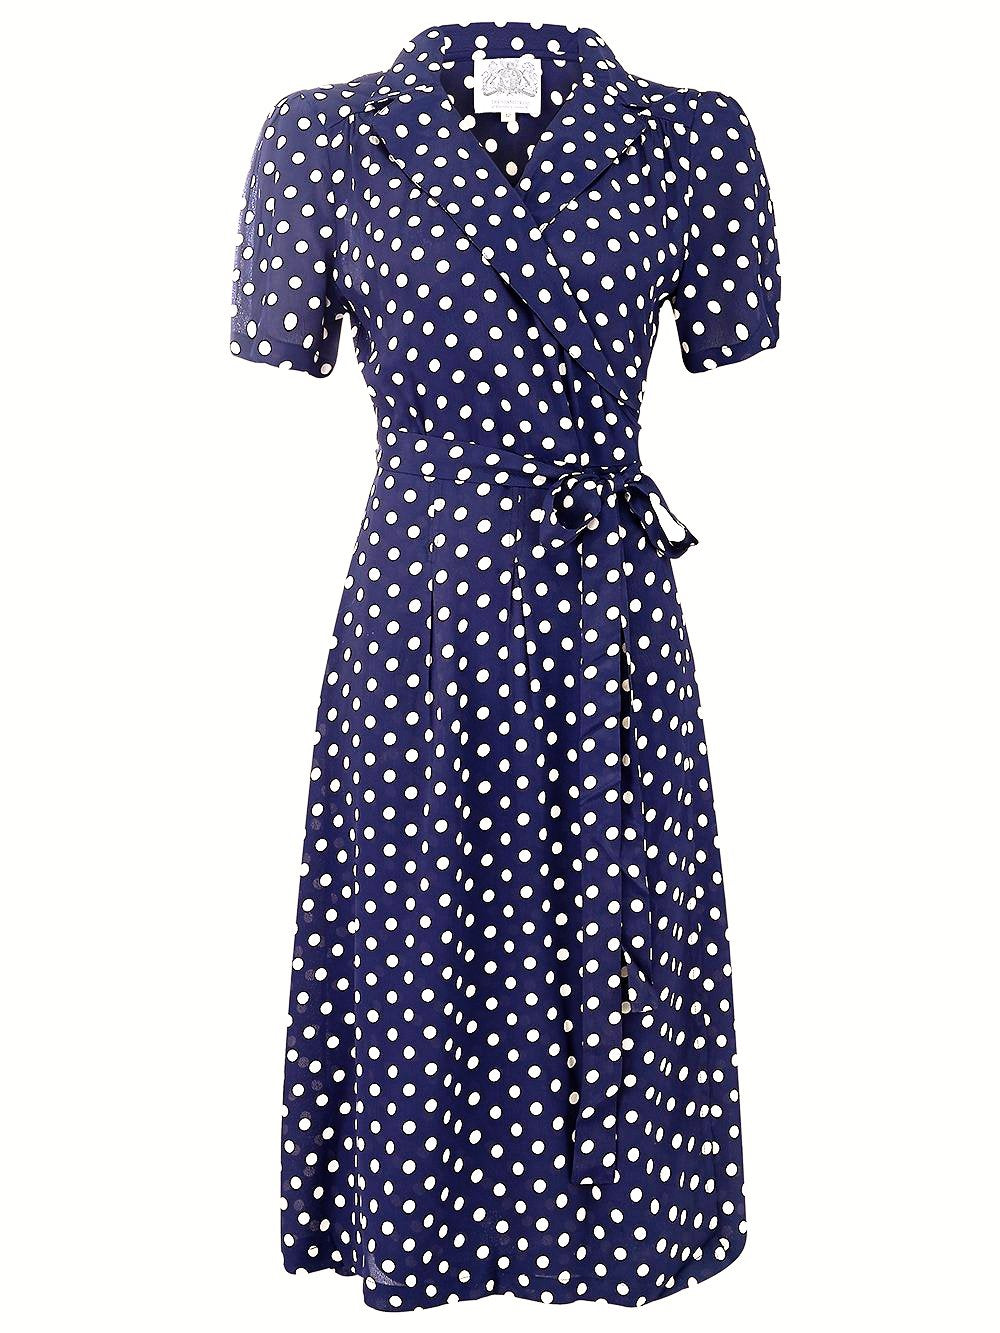 1950s Dresses, 50s Dresses | 1950s Style Dresses Peggy Wrap Dress in Navy with Polka Dot Spot Classic The 1940s Vintage Inspired Style £79.00 AT vintagedancer.com